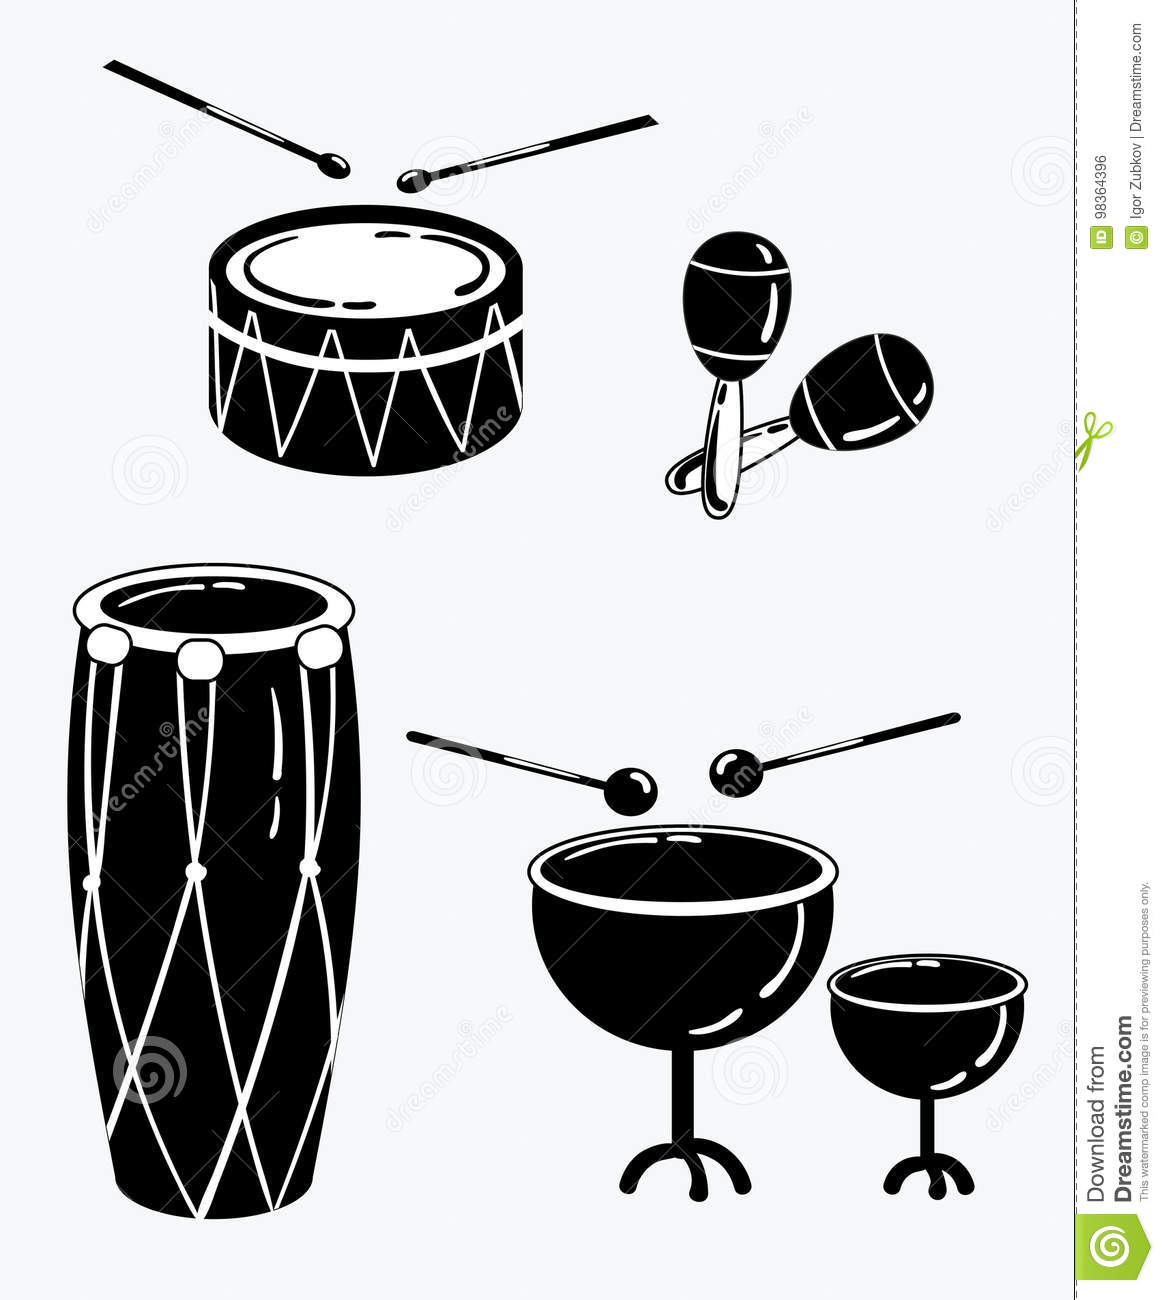 A Set Of Percussion Musical Instruments. Collection Of